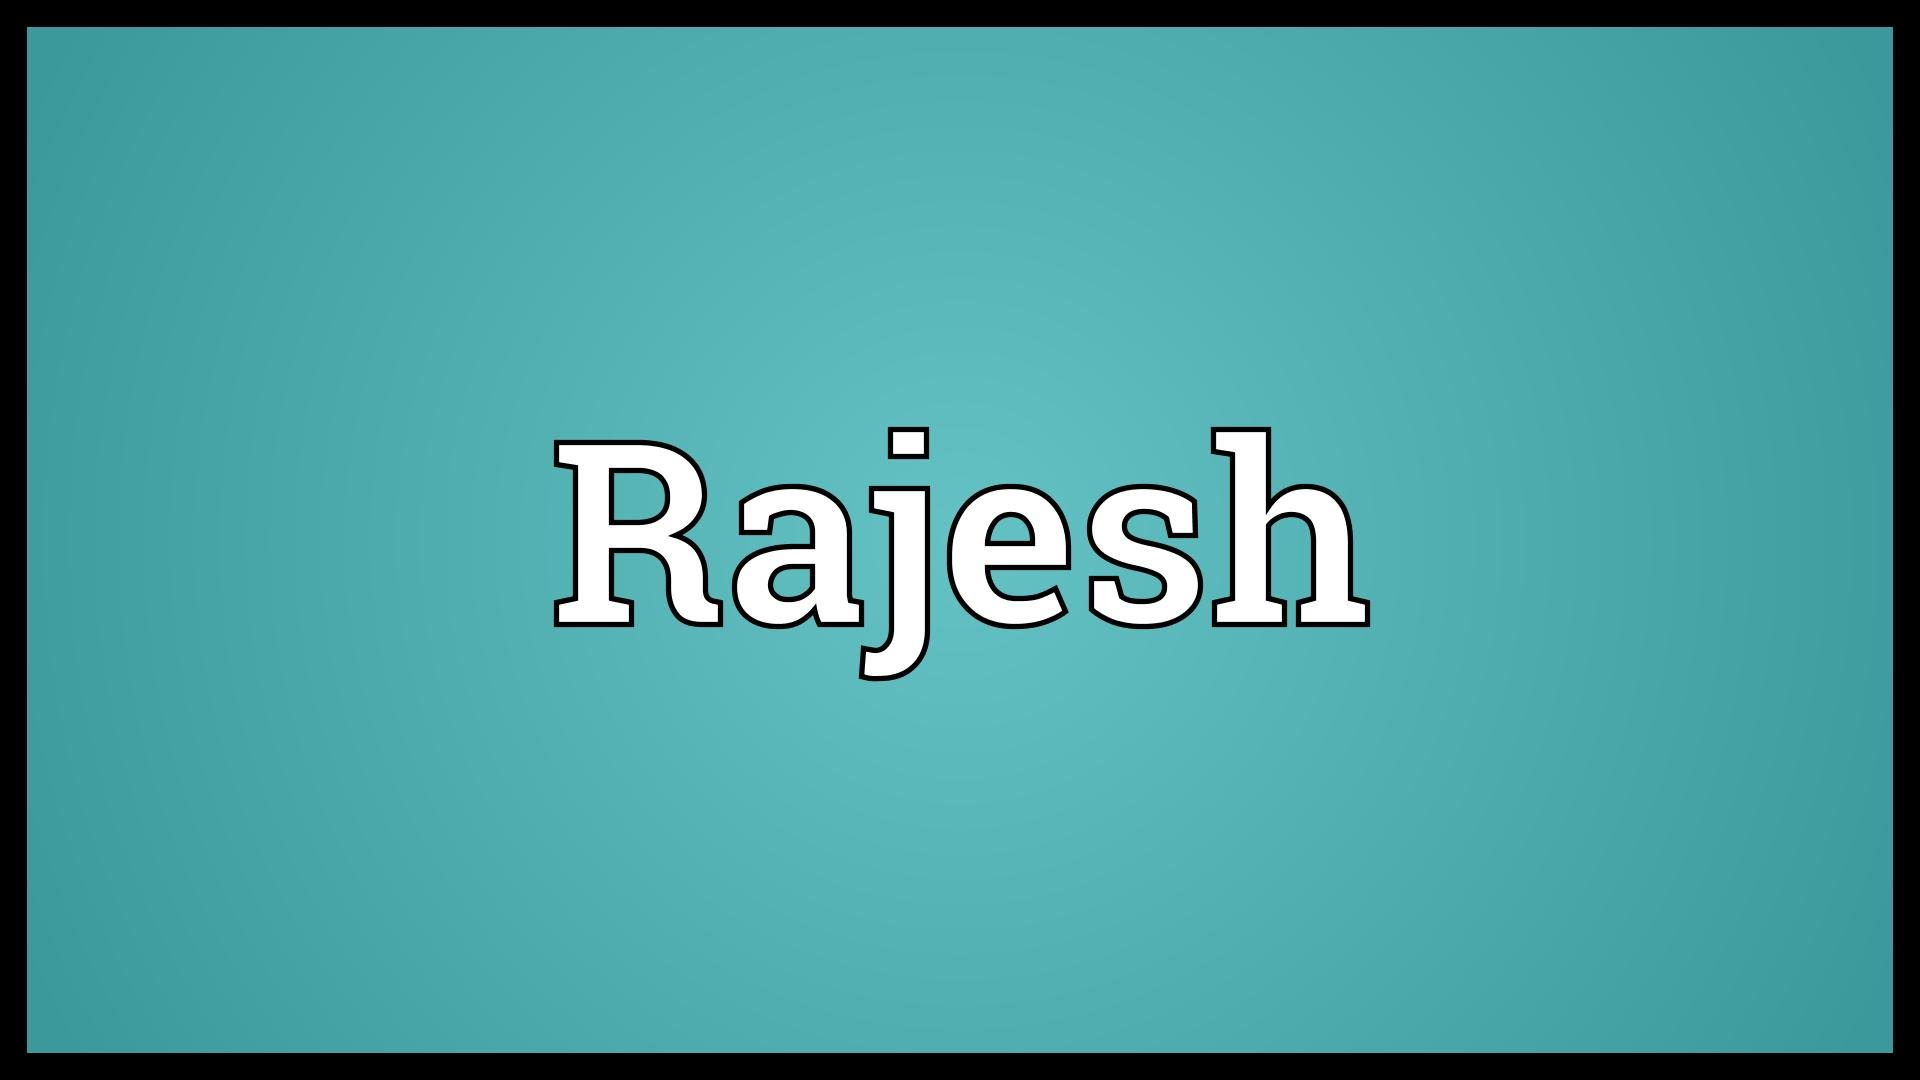 Download Rajesh Name Wallpaper Gallery